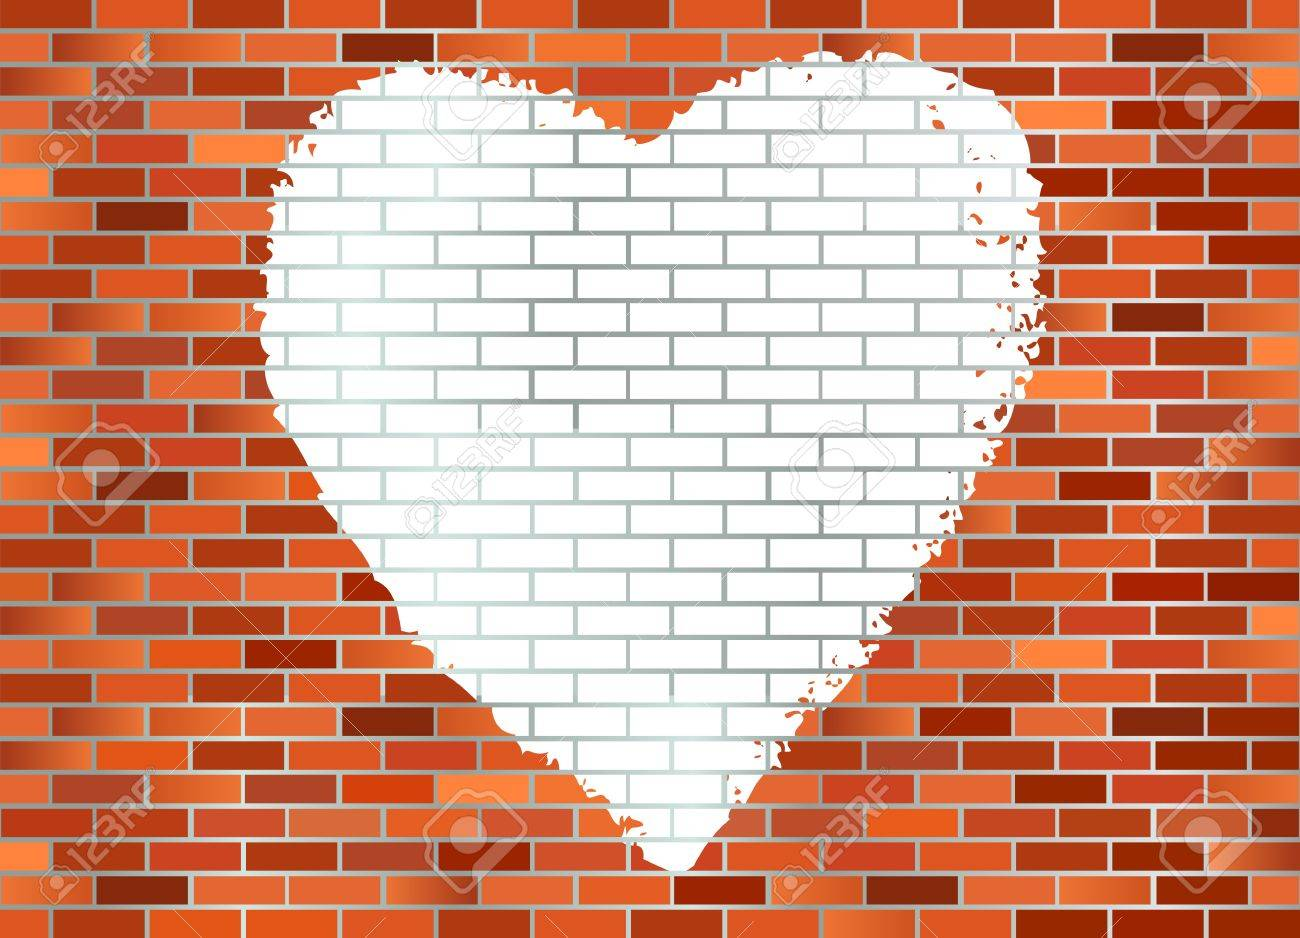 Grafiti wall red - Graffiti On Wall A White Hart Spray Painted On Red Brick Wall Stock Vector